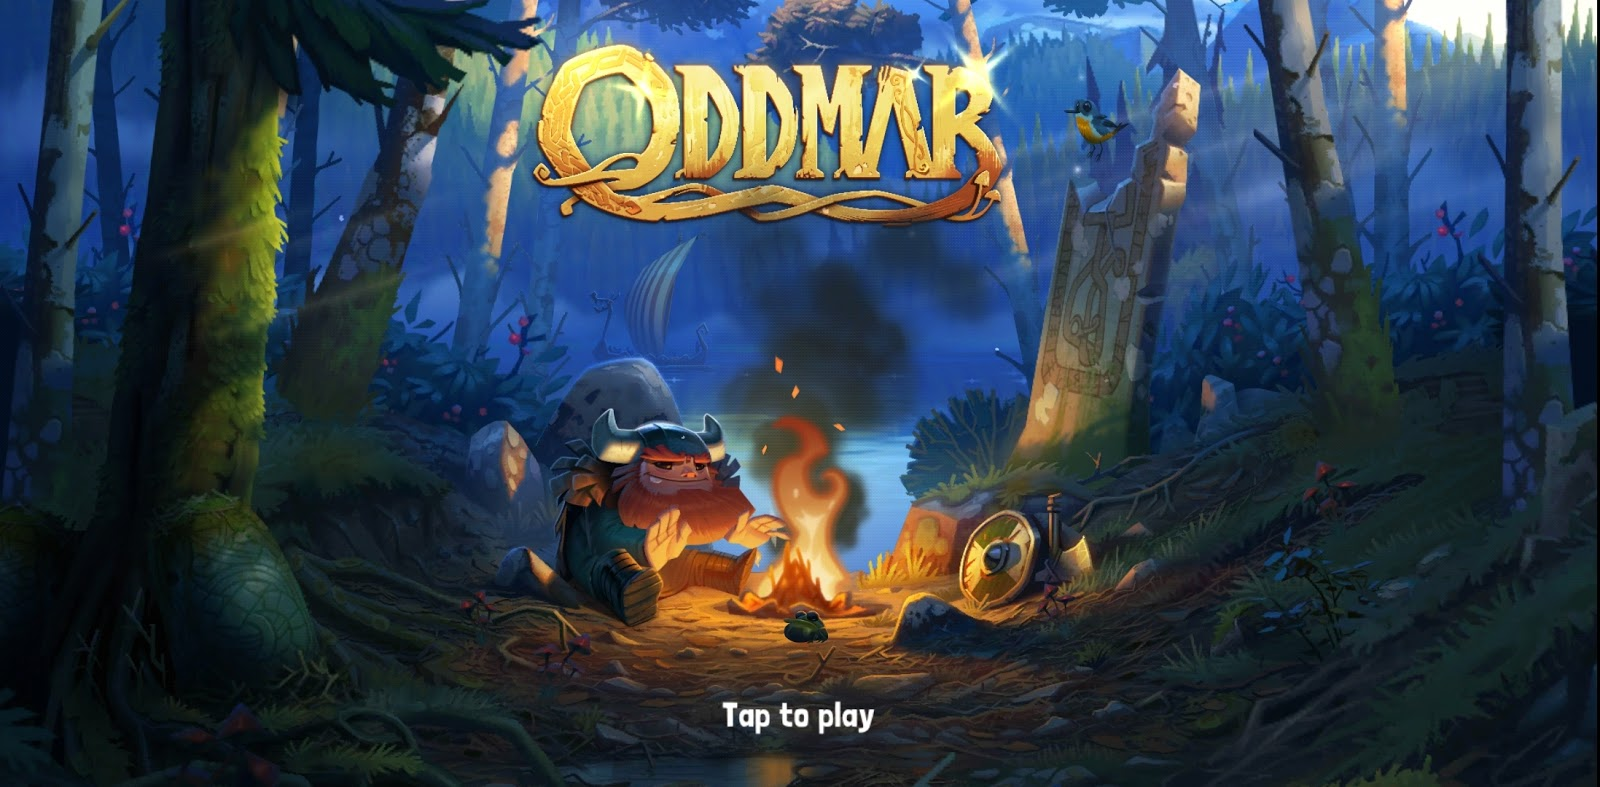 Oddmar review, info game terbaru, game android terbaru, game petualangan android terbaik, game ios terbaru, game terbaru 2019, info game terbaru, kabar game terbaru, berita game terbaru,